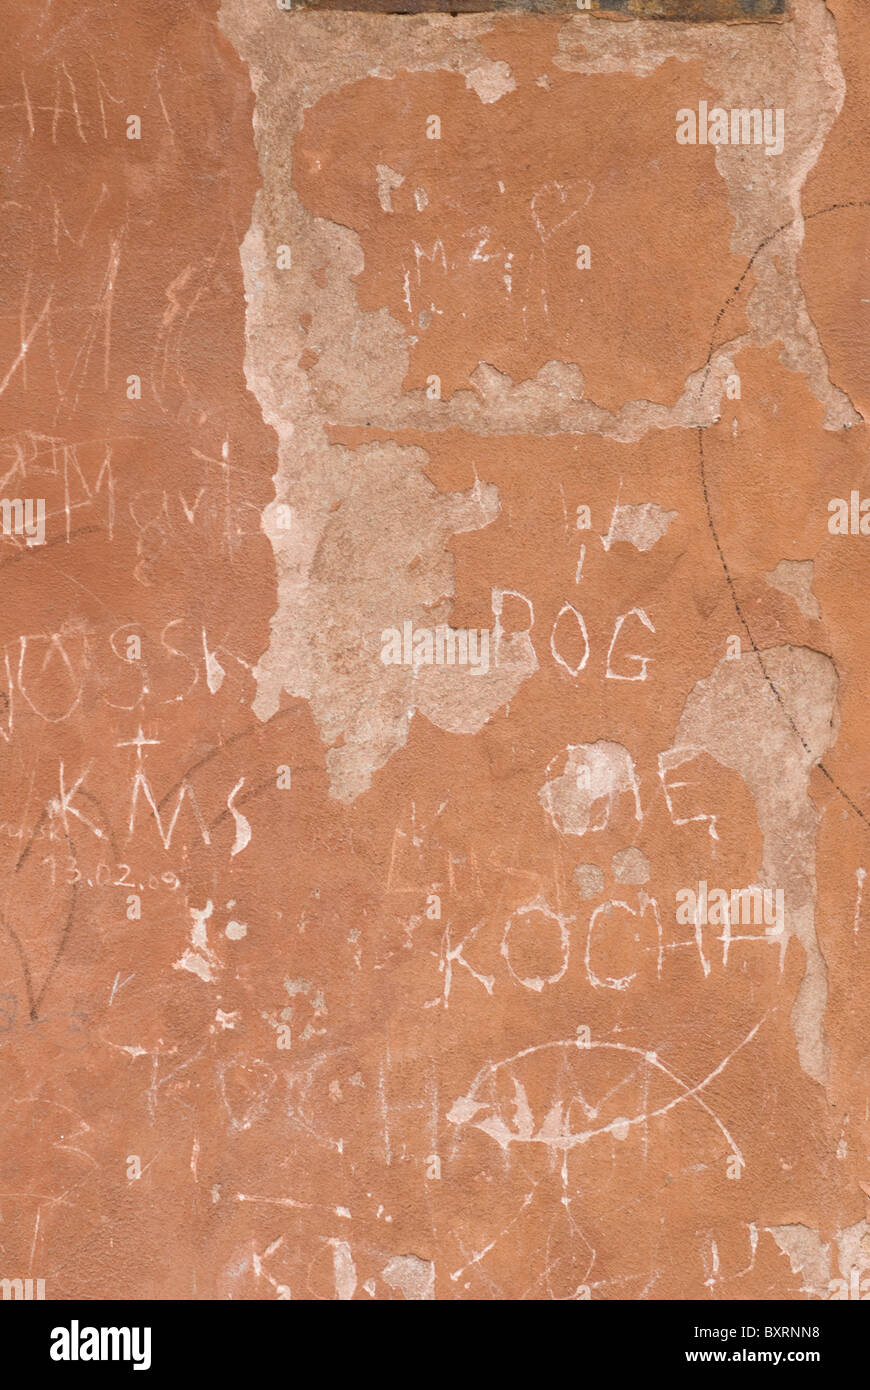 Vandalism on old wall grungy - Stock Image